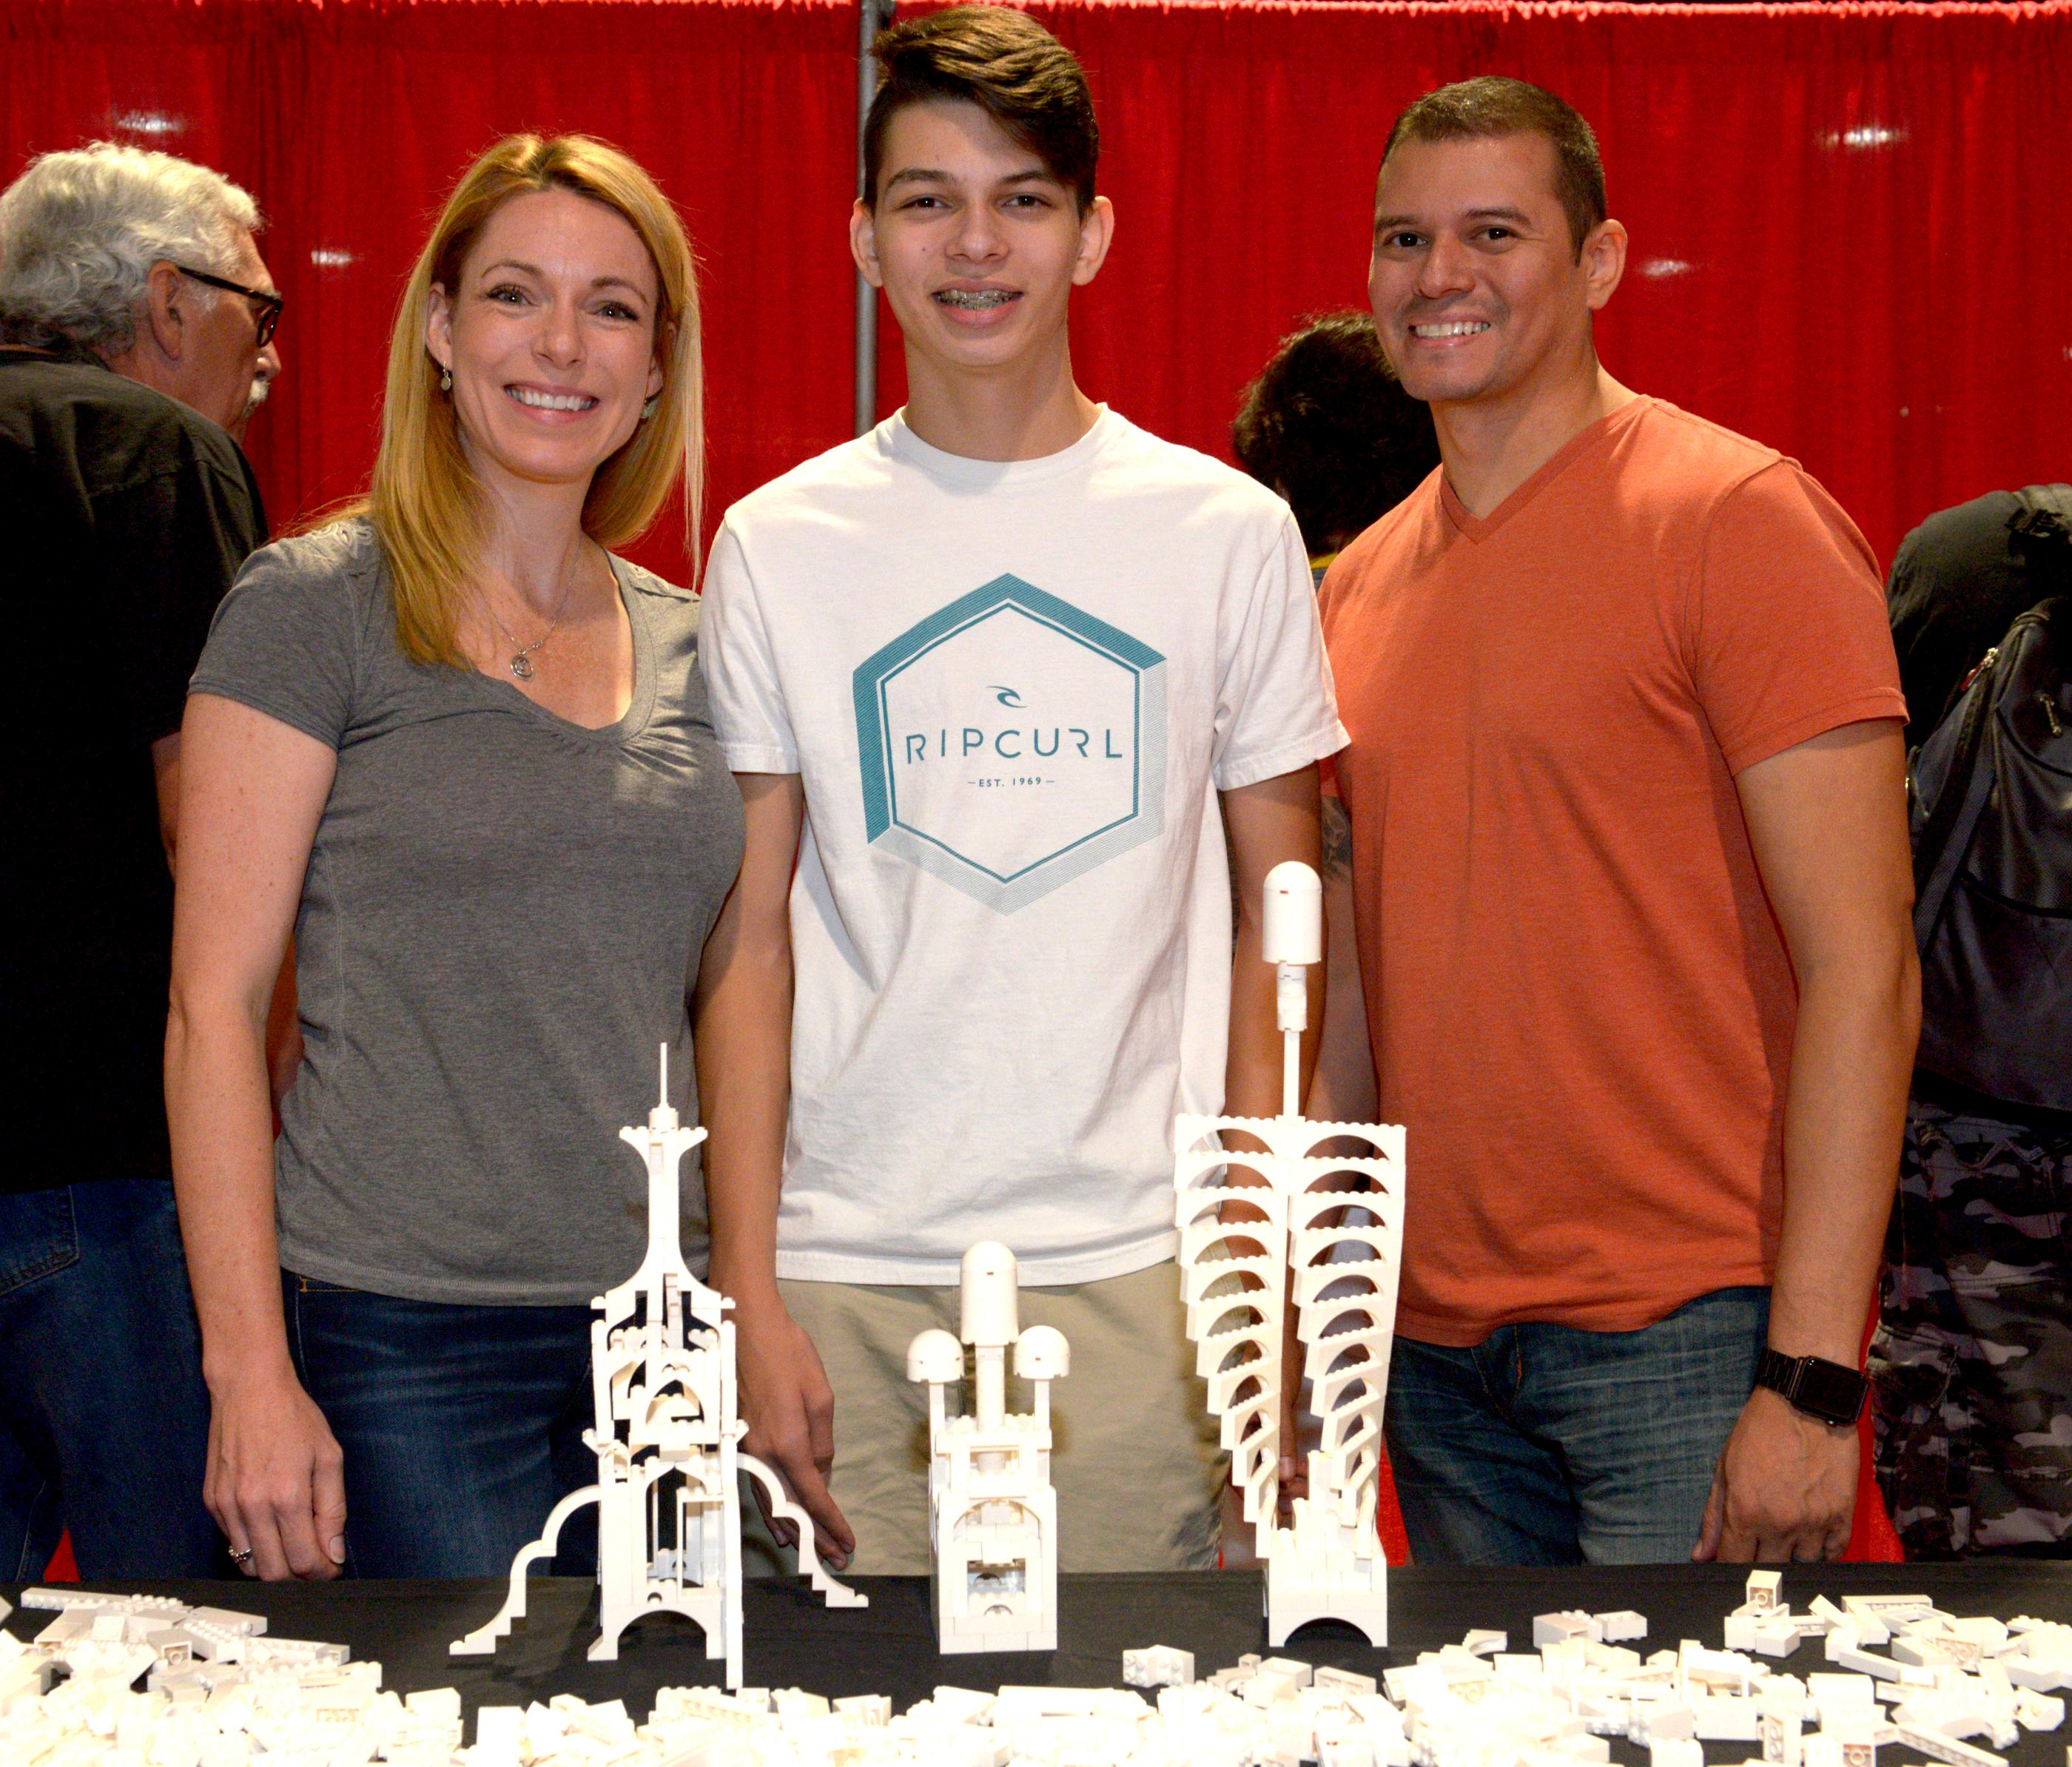 The Bonafe family (l-r) Jamie, Sean and Ben pose with their creations in the Architecture Zone during the Brick Fest Live Lego Fan Experience at the Las Vegas Convention Center, September 9, 2017. [Glenn Pinkerton/Las Vegas News Bureau]